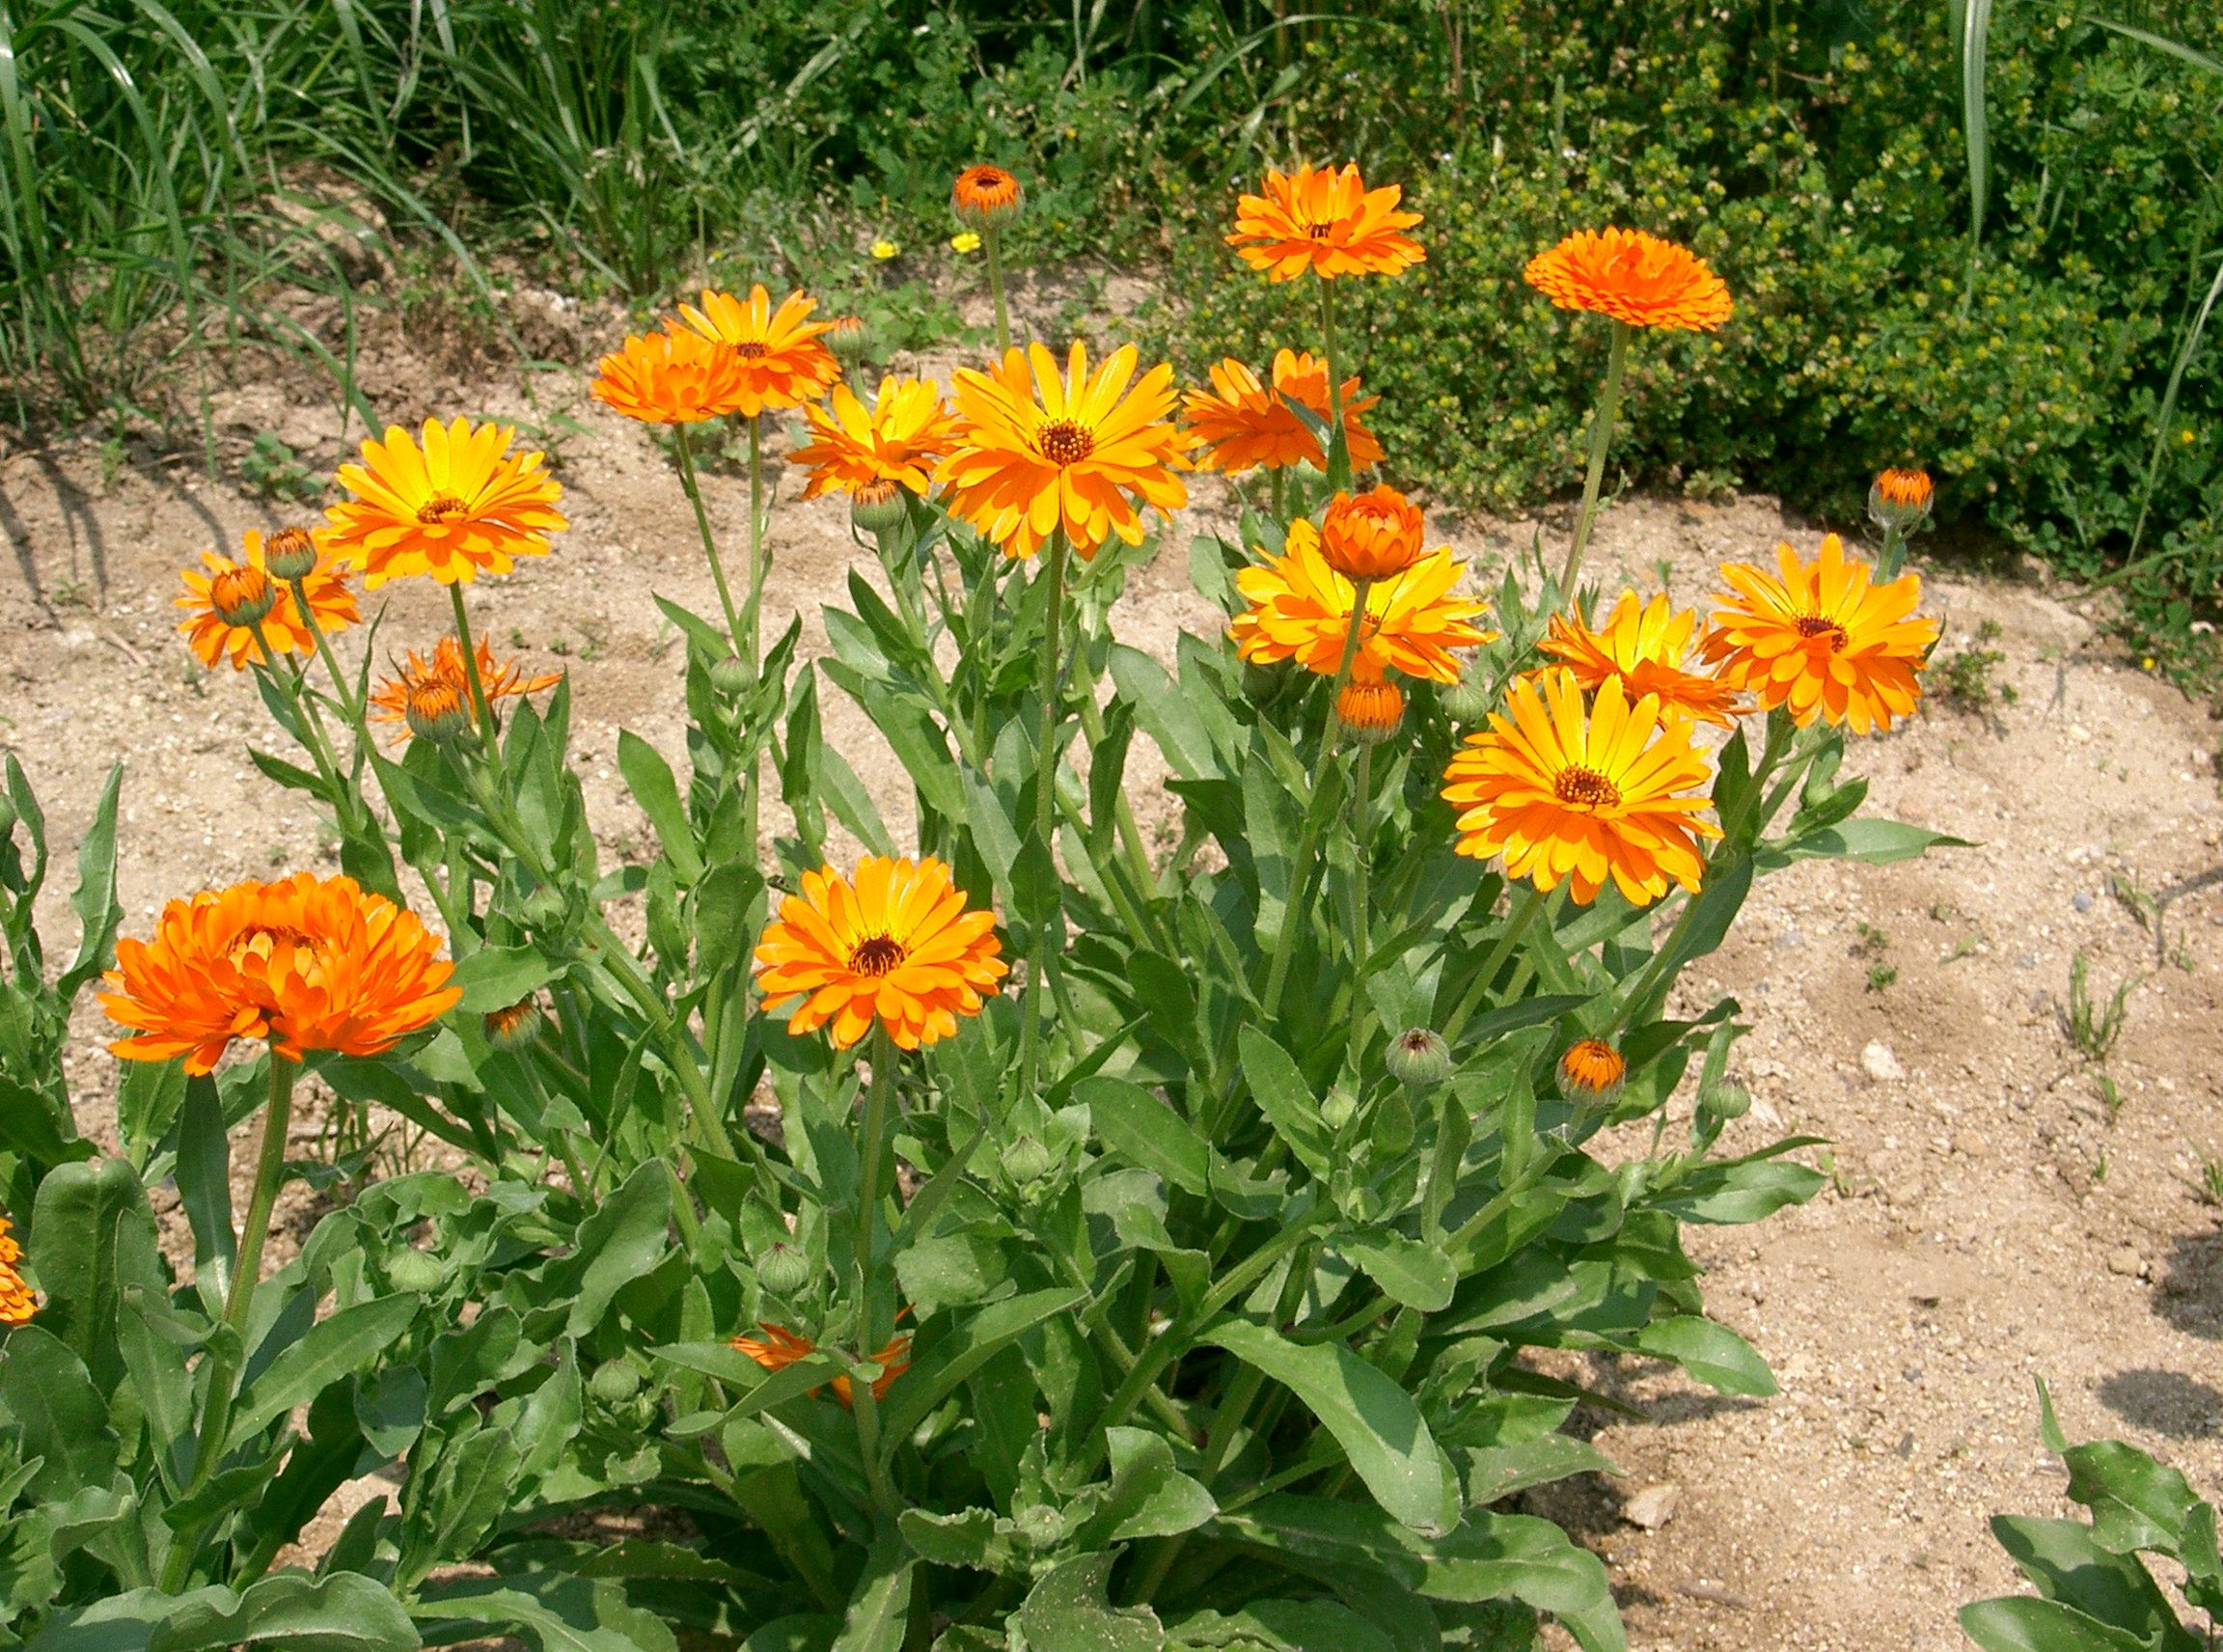 http://upload.wikimedia.org/wikipedia/commons/2/24/Calendula_officinalis3.jpg